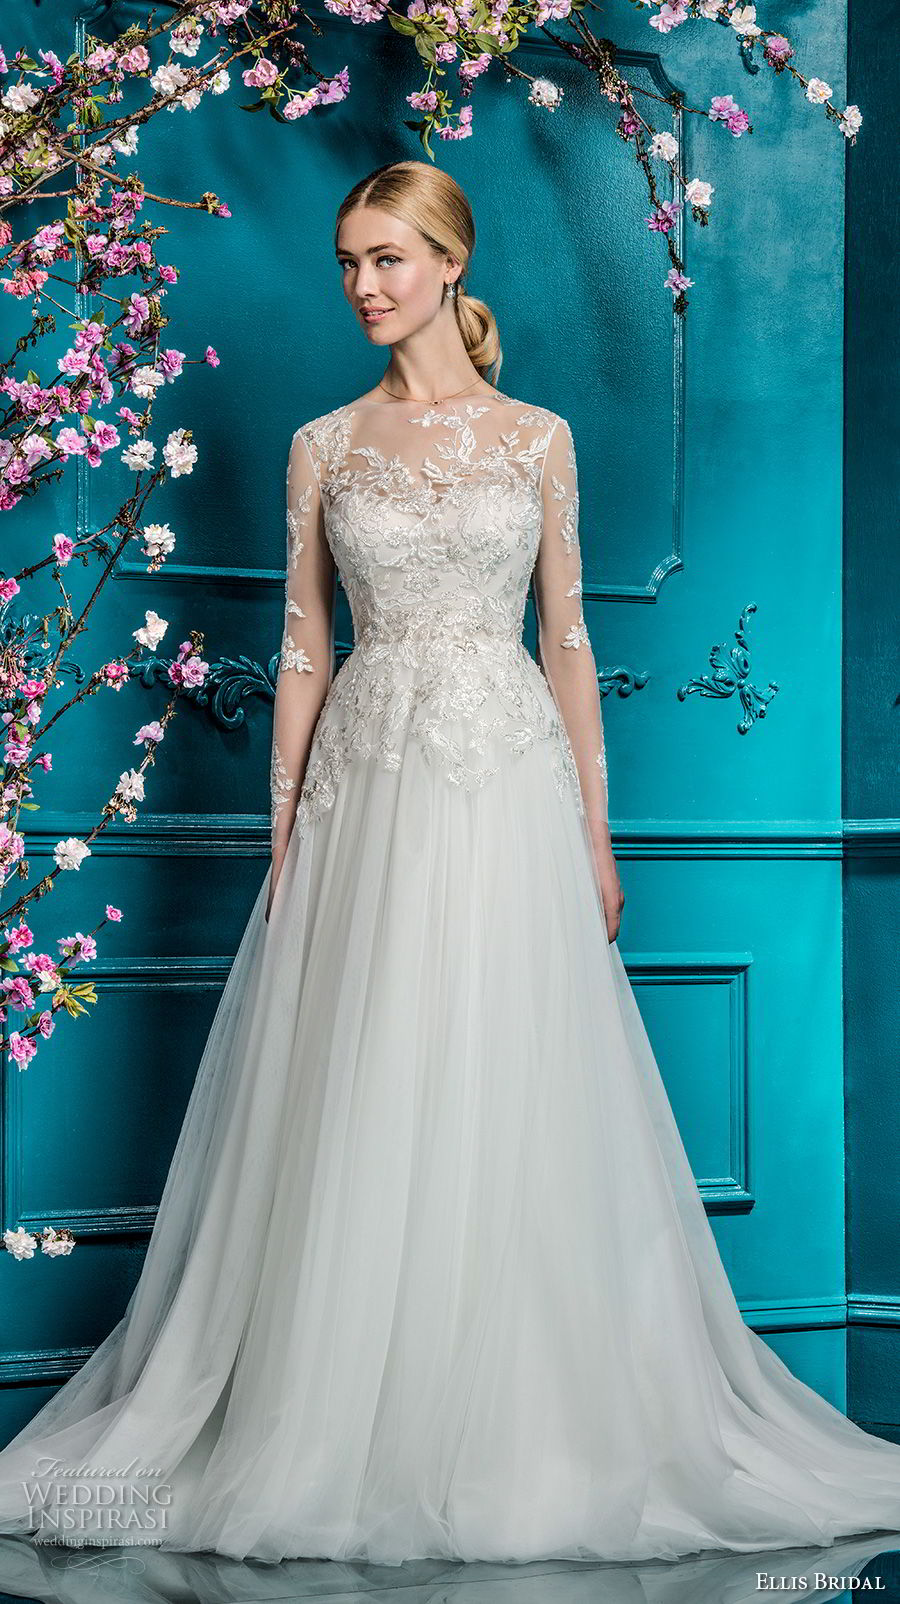 ellis bridals 2018 long sleeves illusion jswel sweetheart neckline heavily embellished bodice tulle skirt romantic a line wedding dress covered lace back chapel train (13) mv